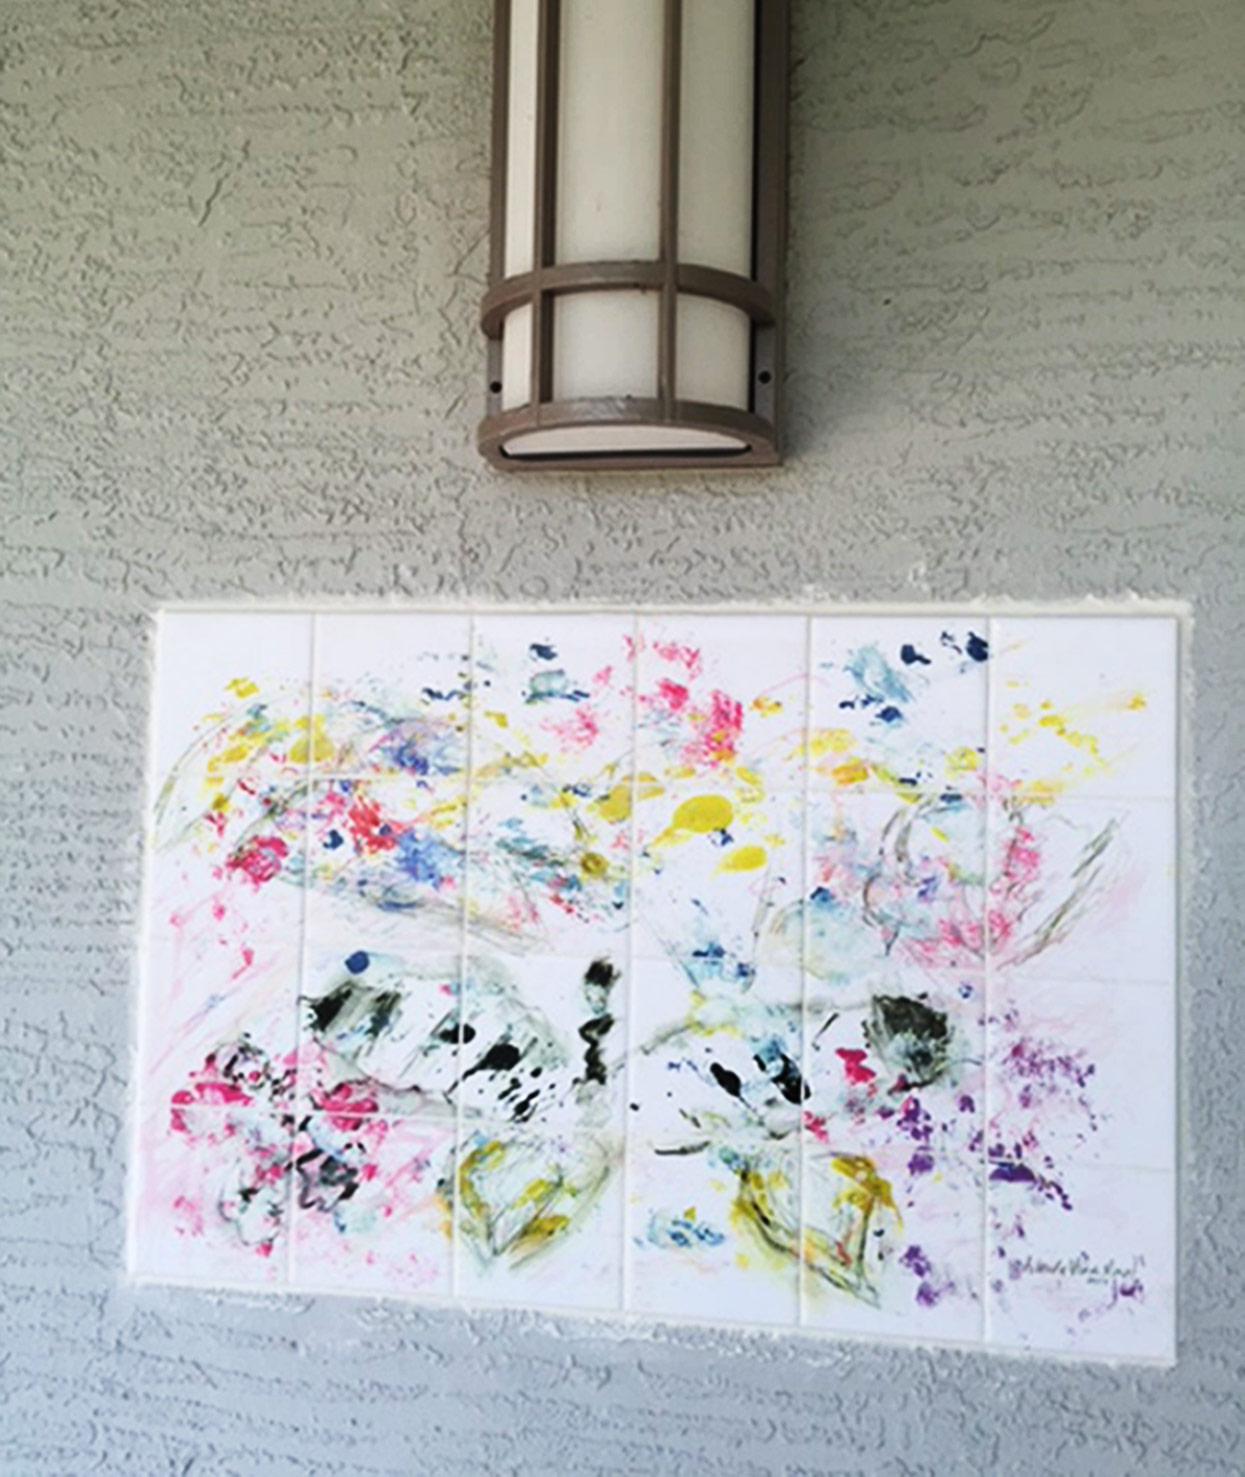 Outdoor Tile Mural Abstract Painting